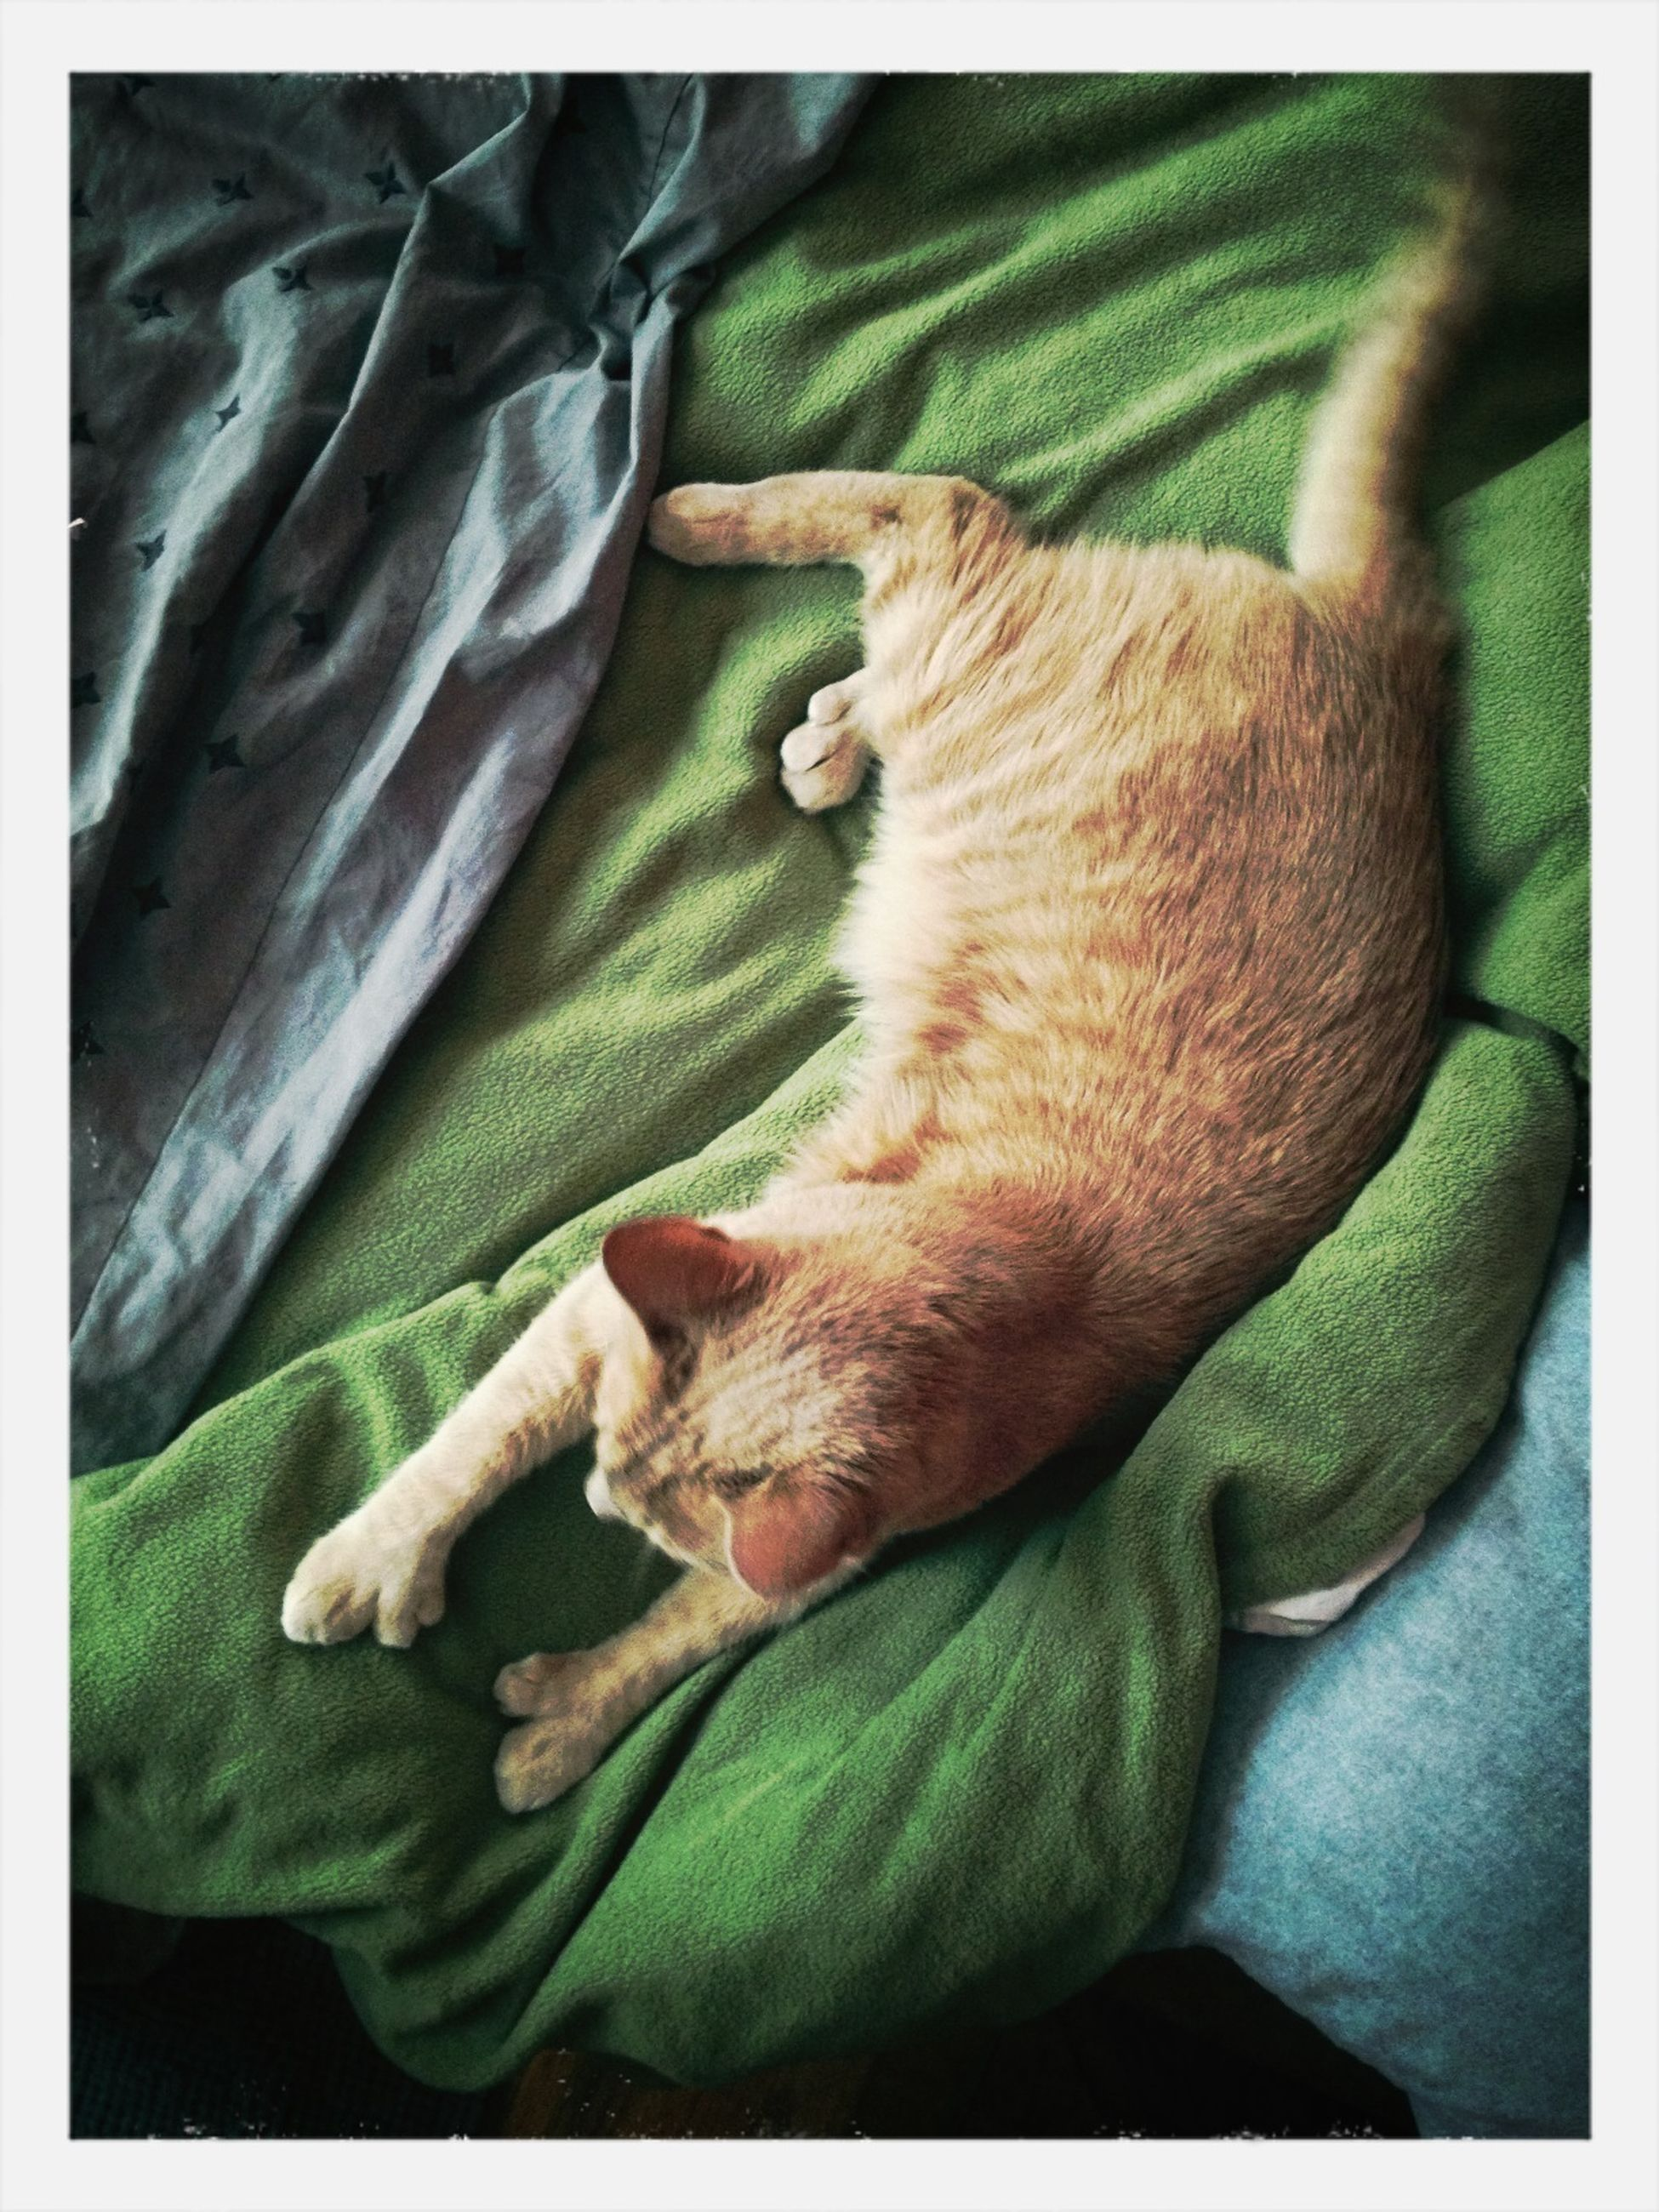 animal themes, transfer print, one animal, pets, domestic animals, auto post production filter, sleeping, mammal, indoors, relaxation, resting, lying down, high angle view, green color, dog, close-up, domestic cat, bed, cat, zoology